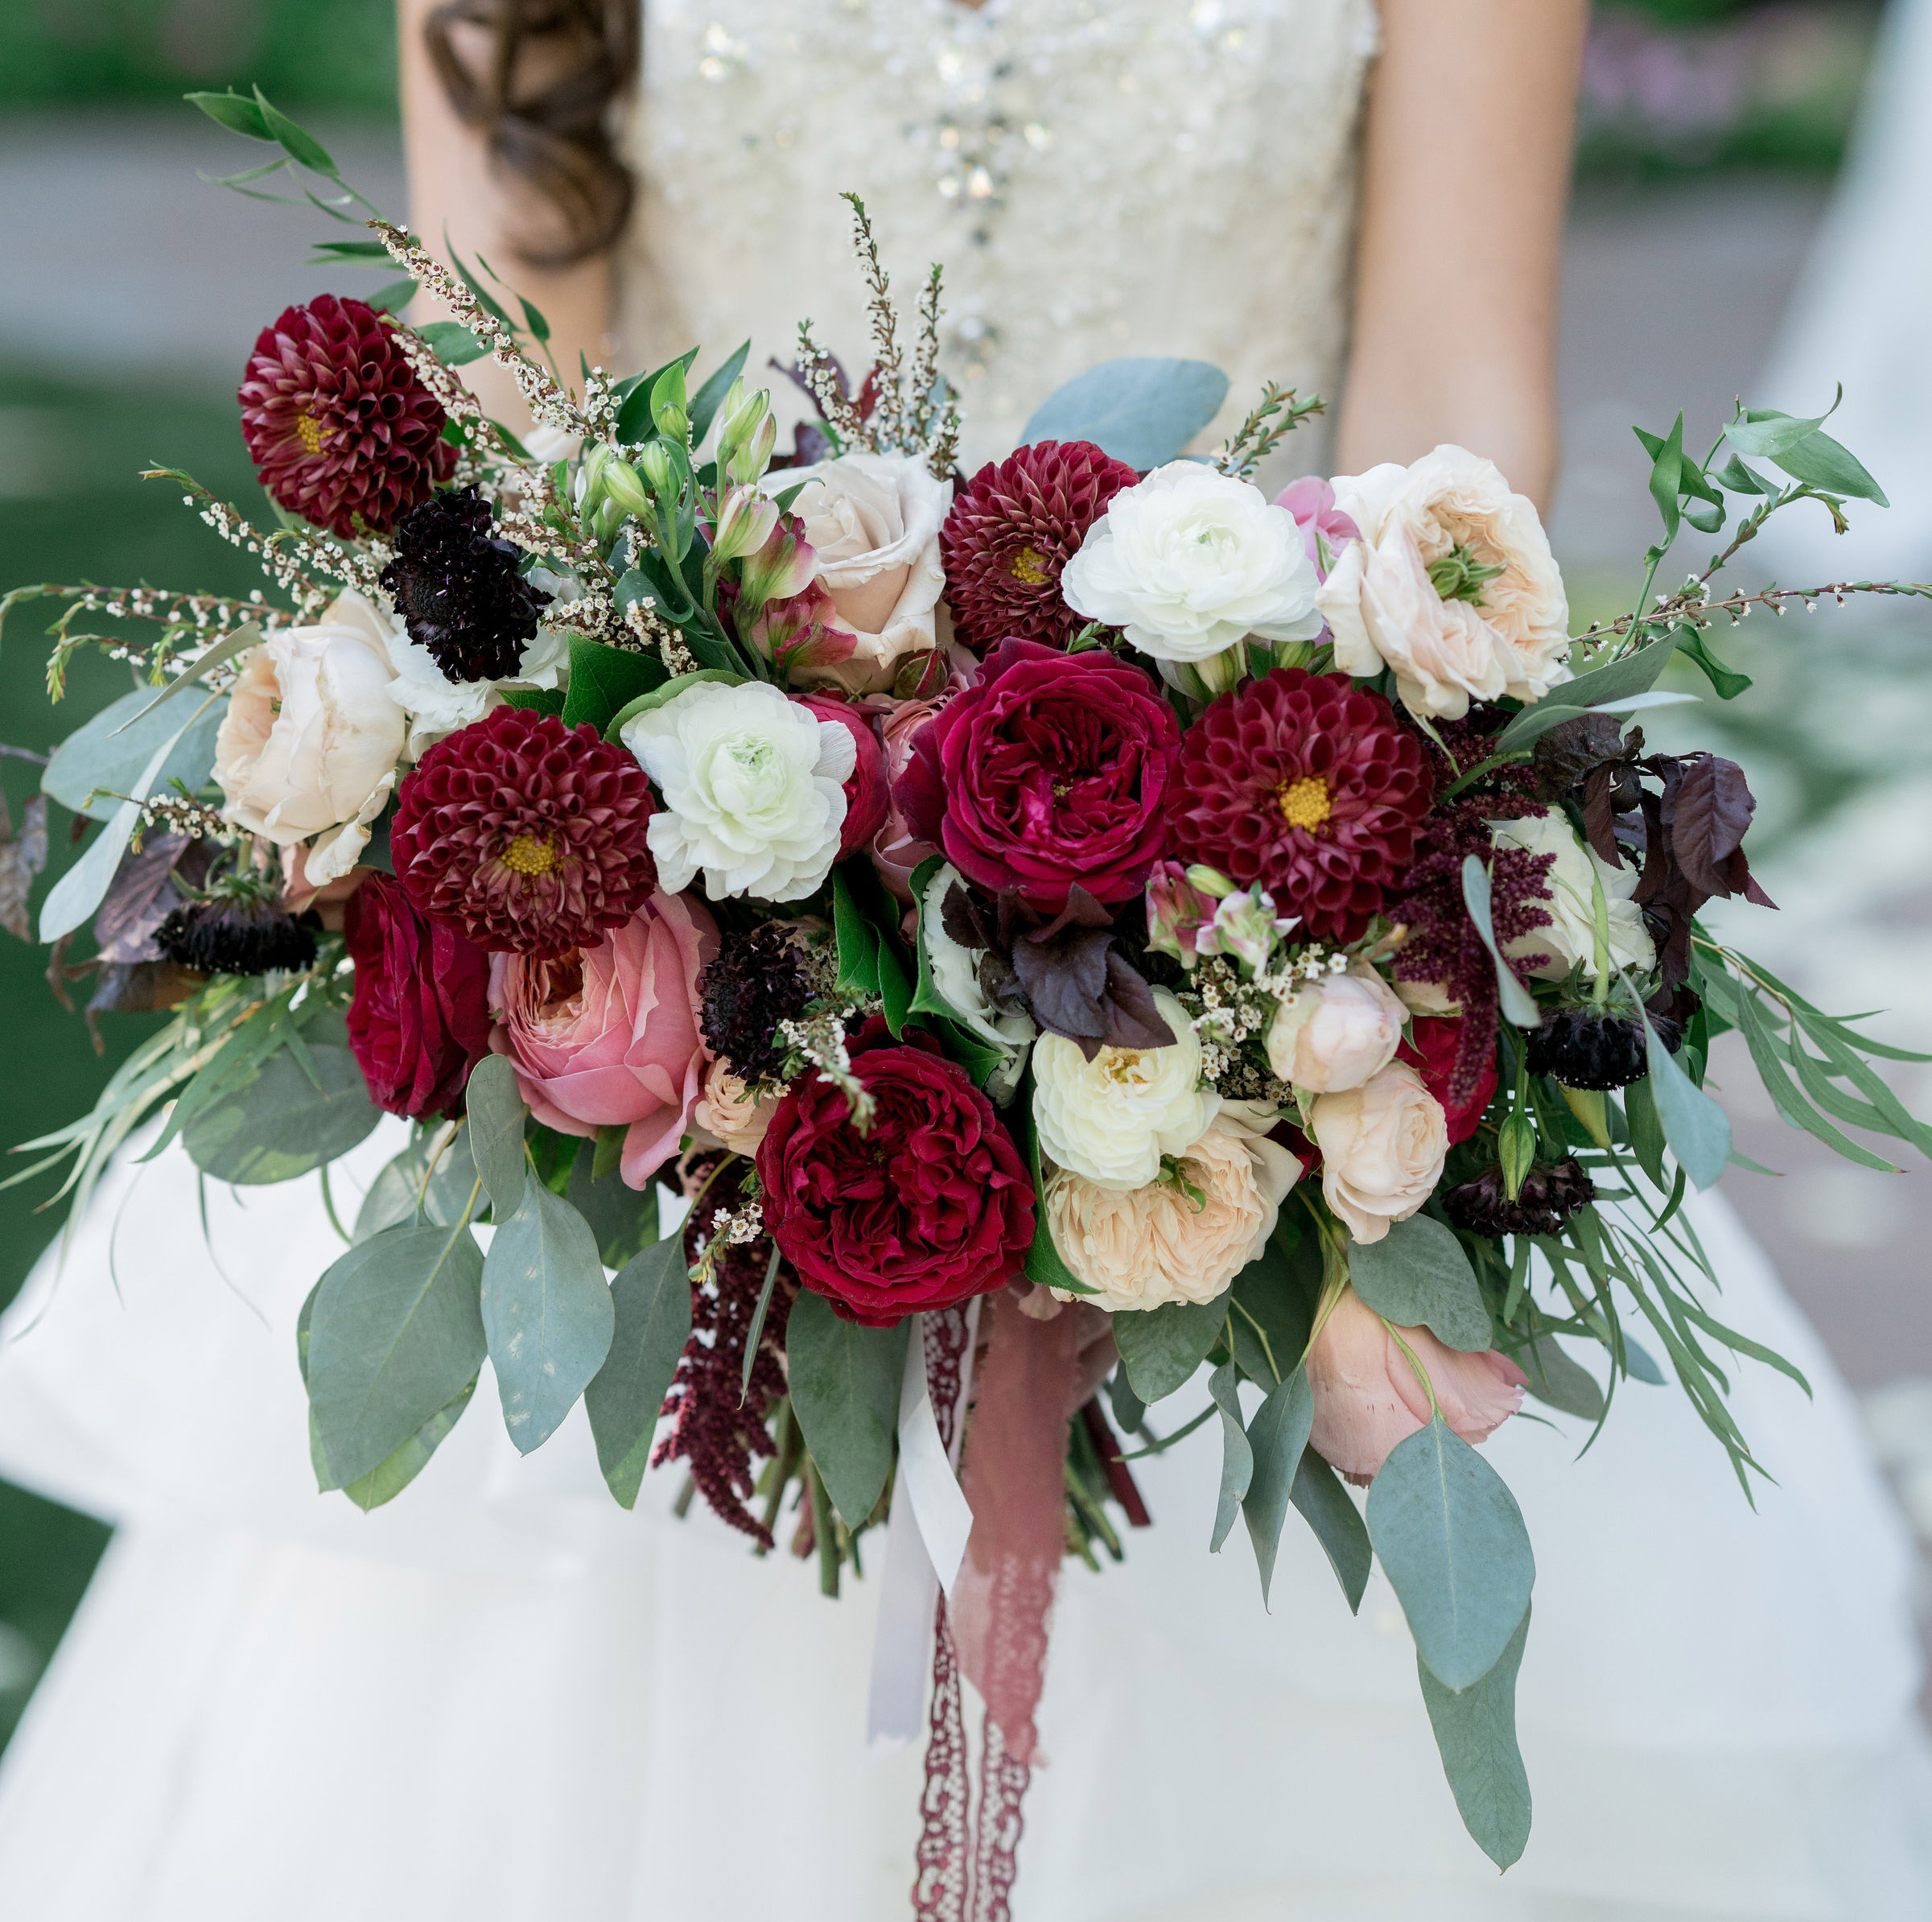 Pink Wedding Flowers: 15 Bridal Bouquets In Valentine-Inspired Shades